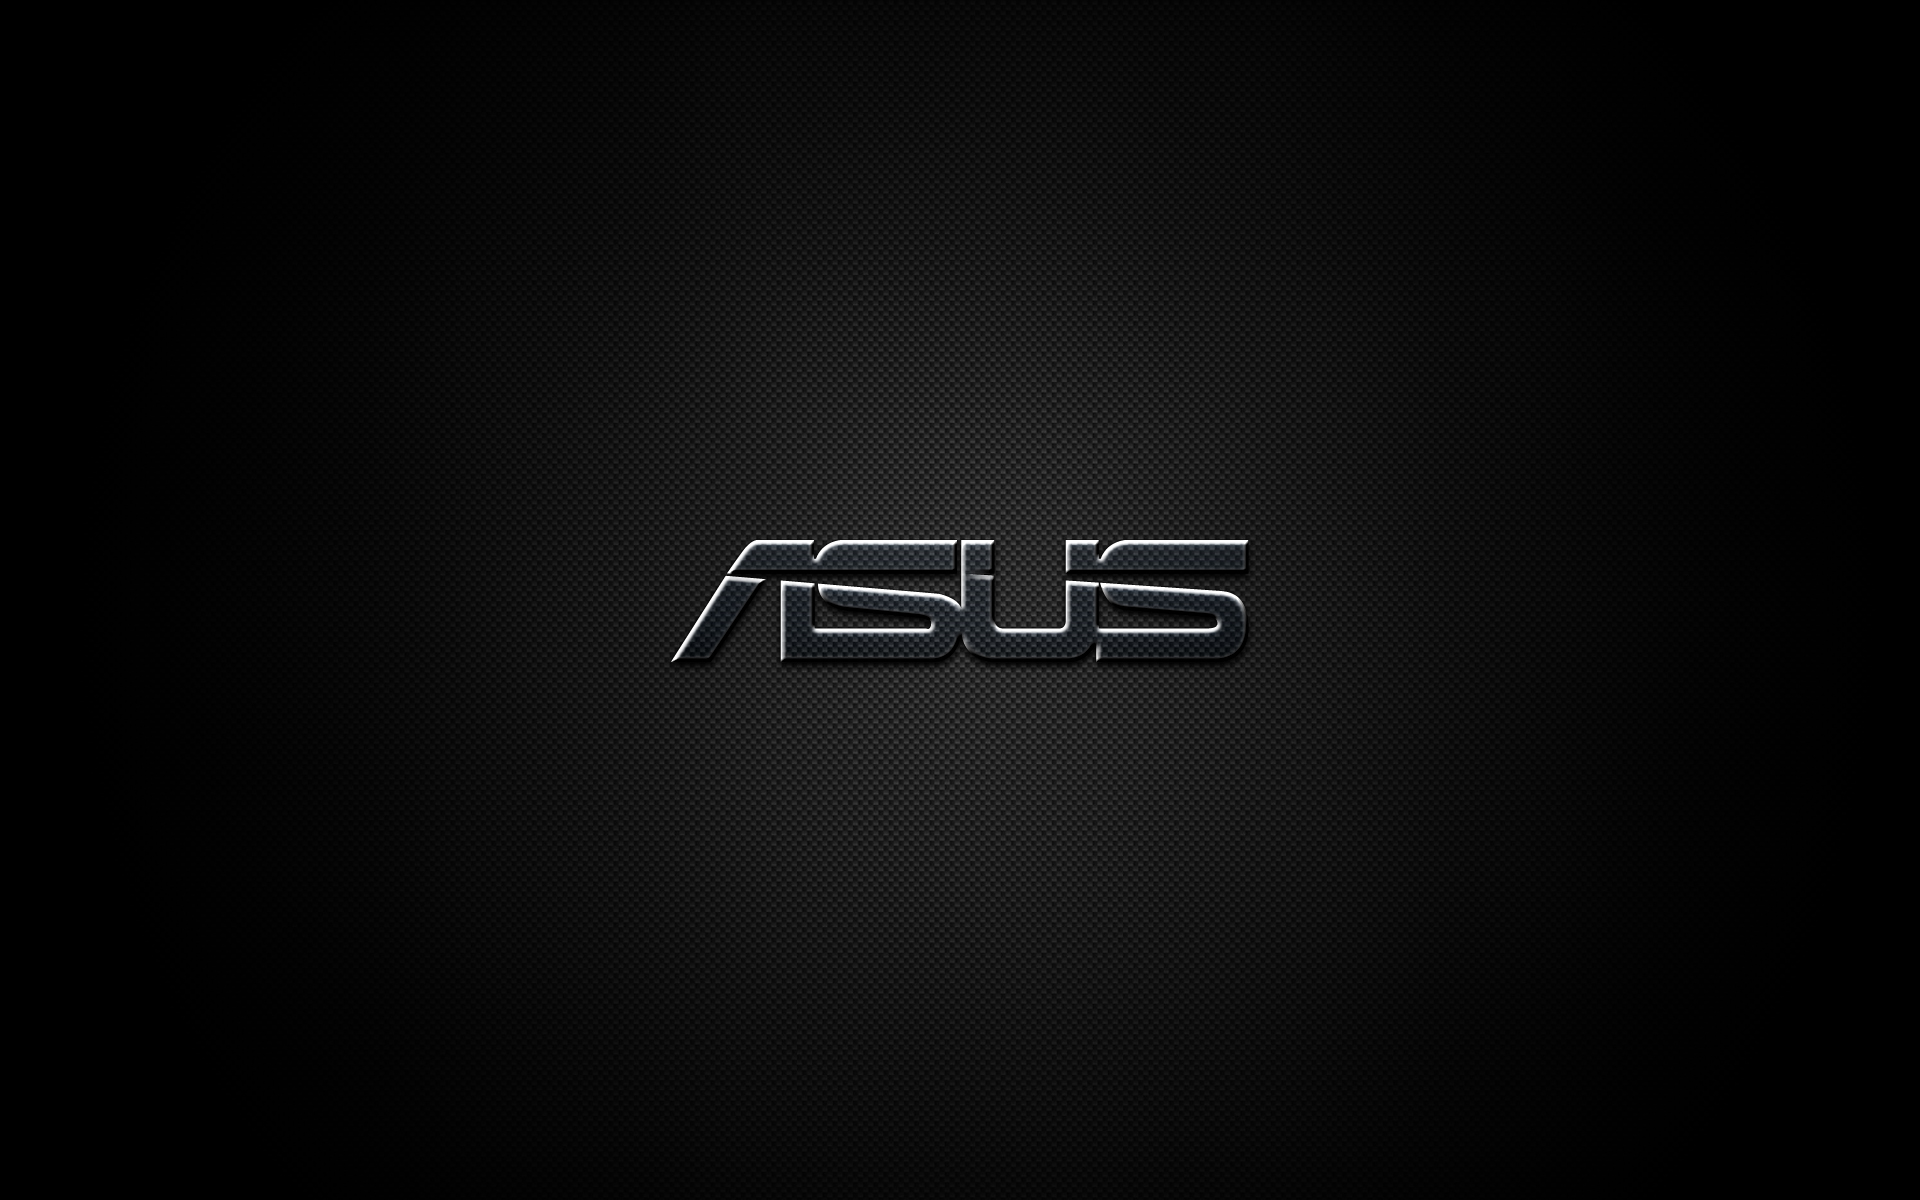 Asus HD Wallpapers, Free Wallpaper Downloads, Asus HD Desktop 1920x1200